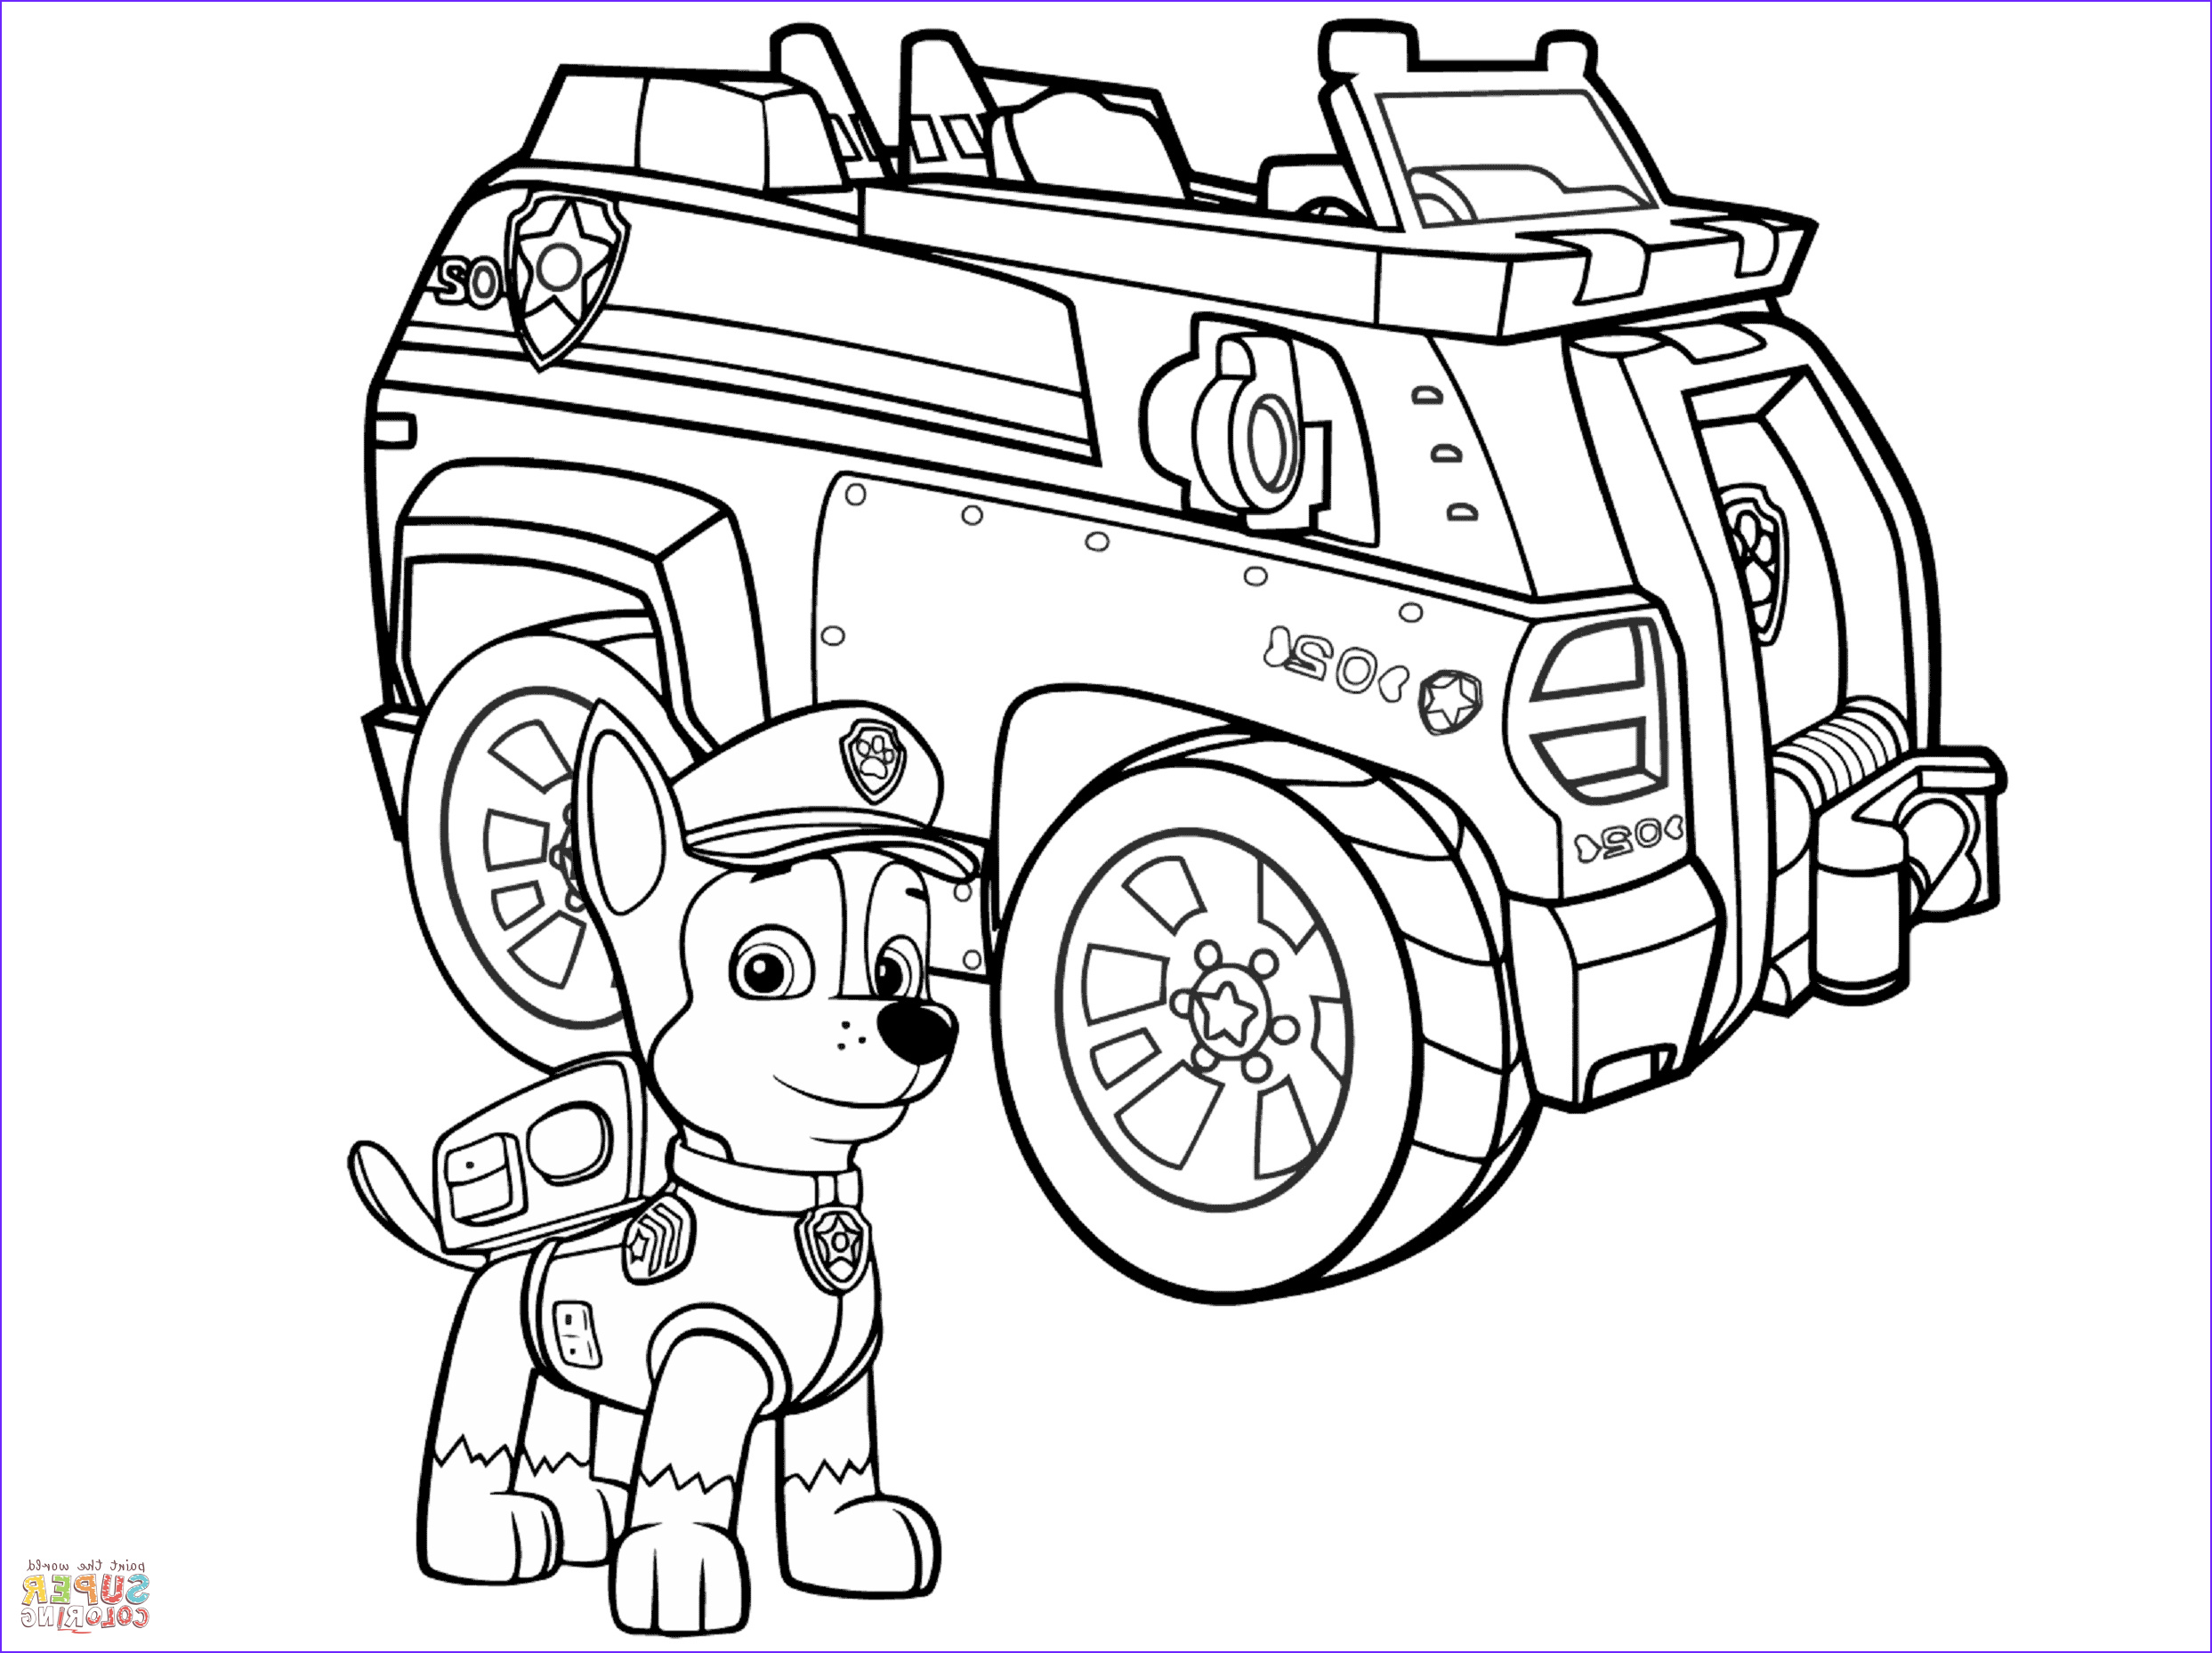 Paw Patrol Coloring Book Elegant Stock Paw Patrol Chase Police Car Coloring Page